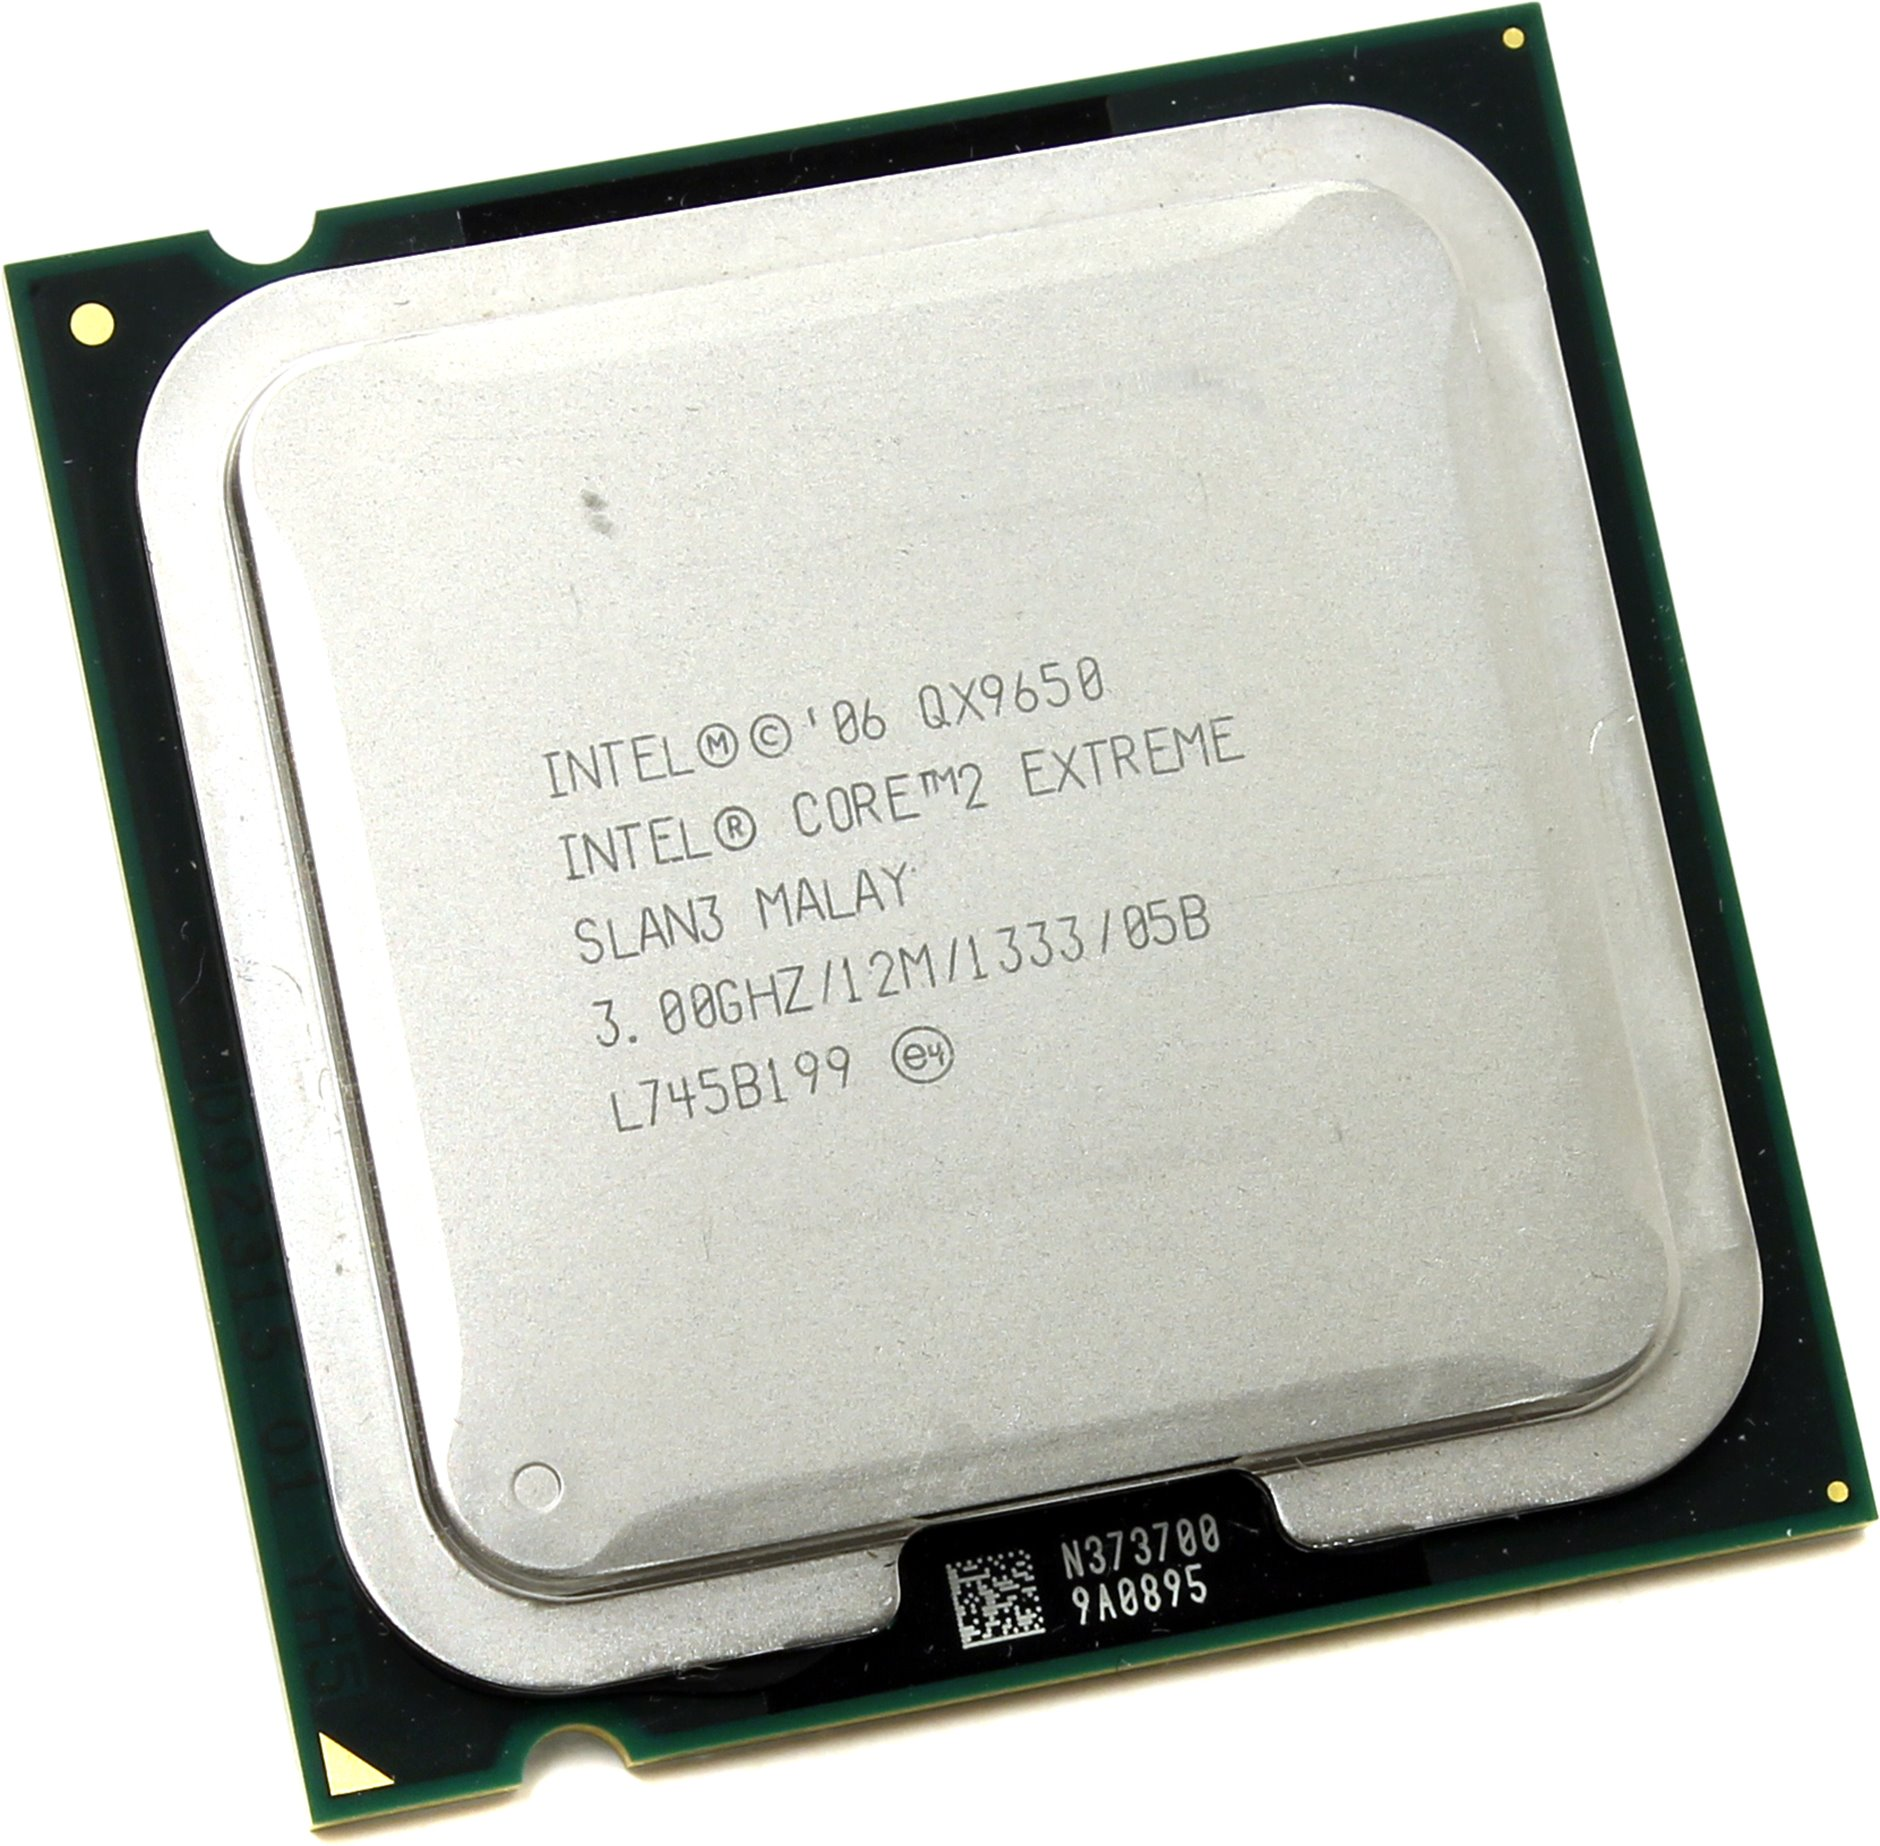 Intel Core 2 Extreme QX9650 3 GHz Quad-Core Processor 12 MB CPU